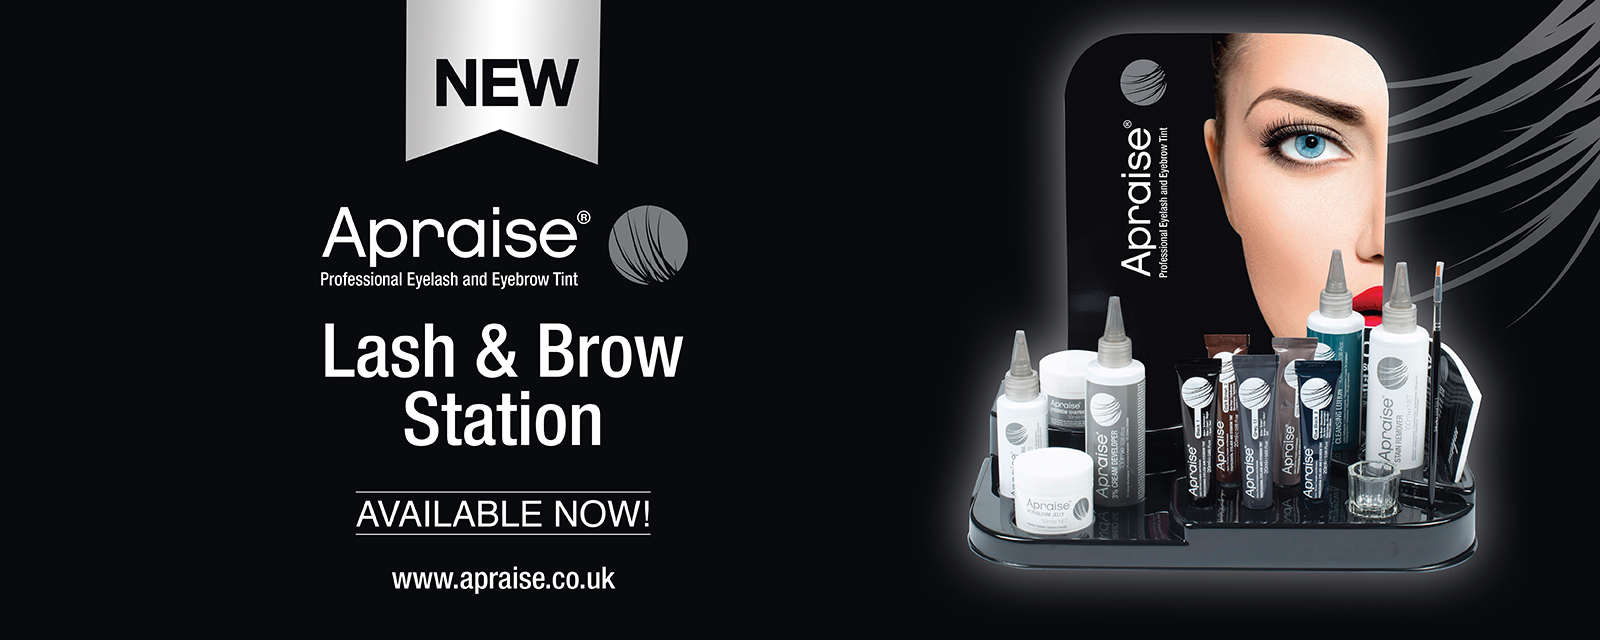 New Product Launch - Apraise Brow station Image